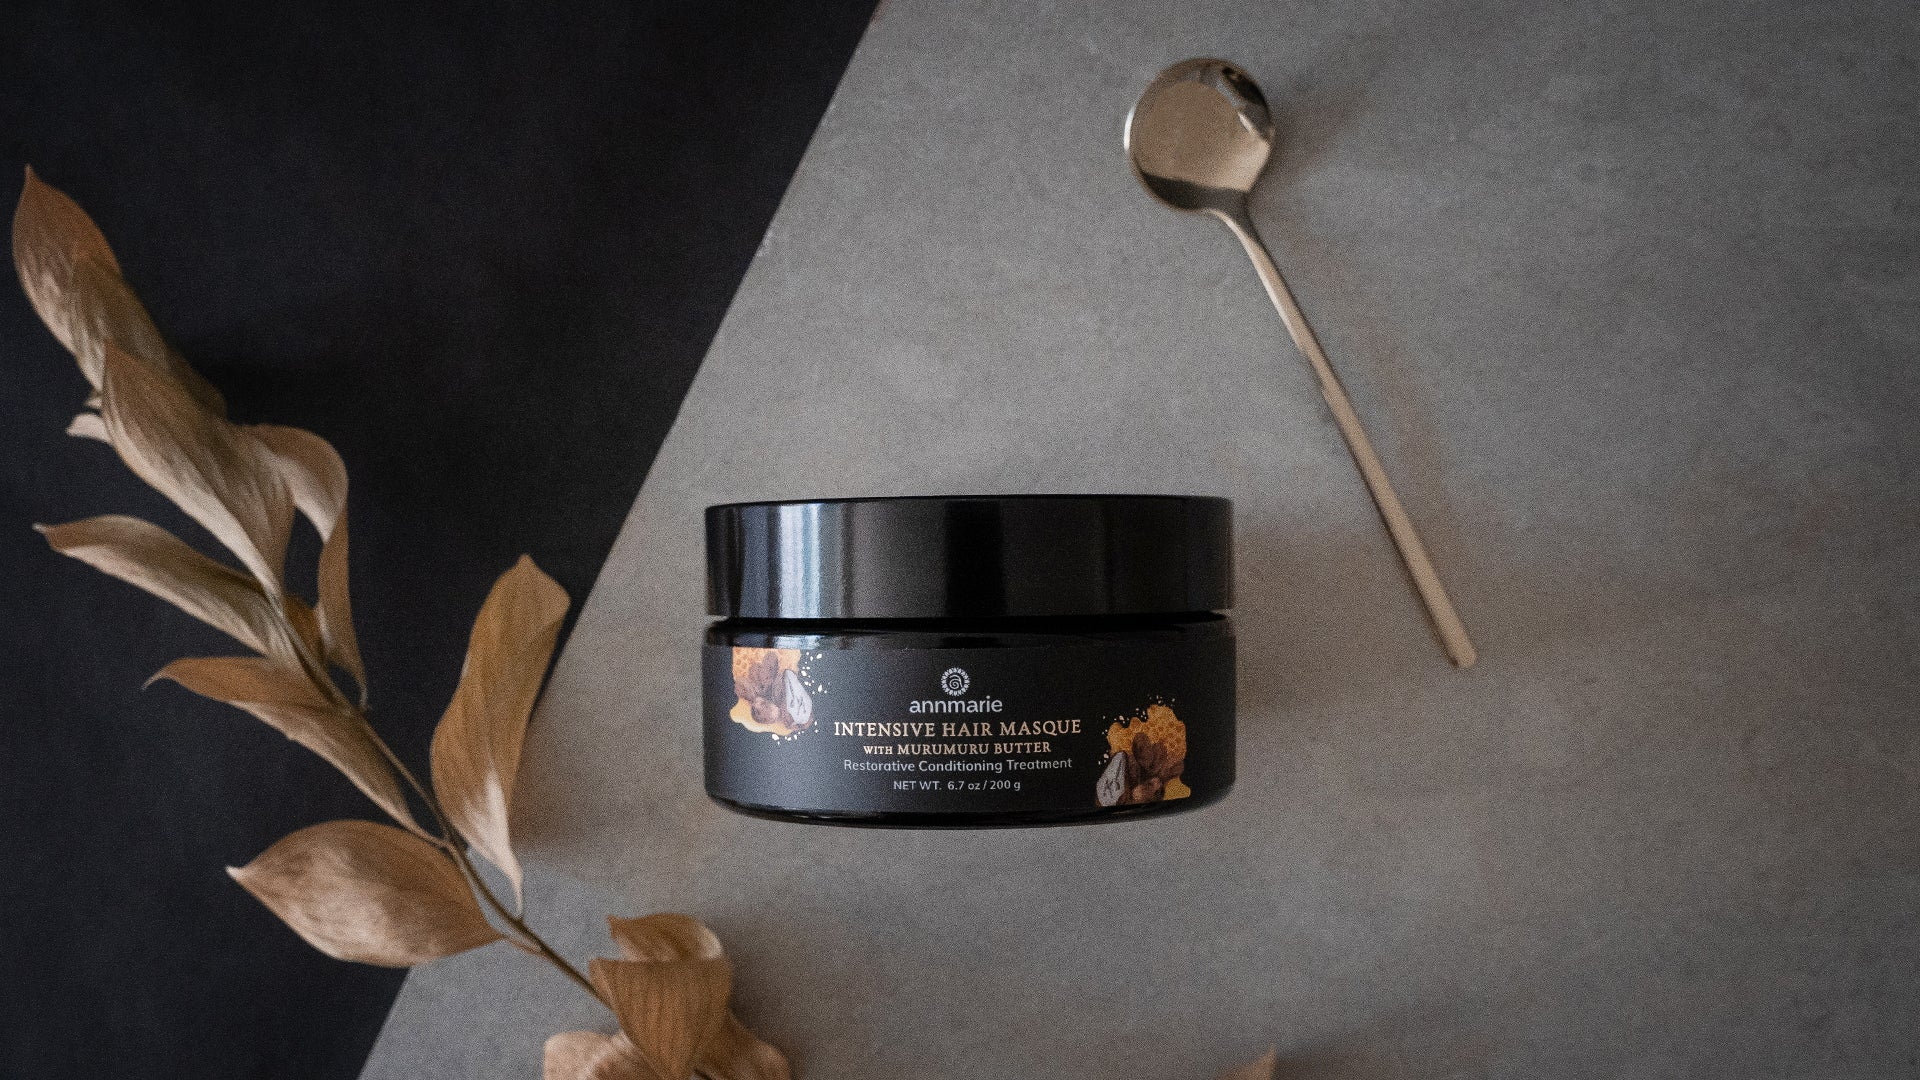 How to use Intensive Hair Masque with Murumuru Butter